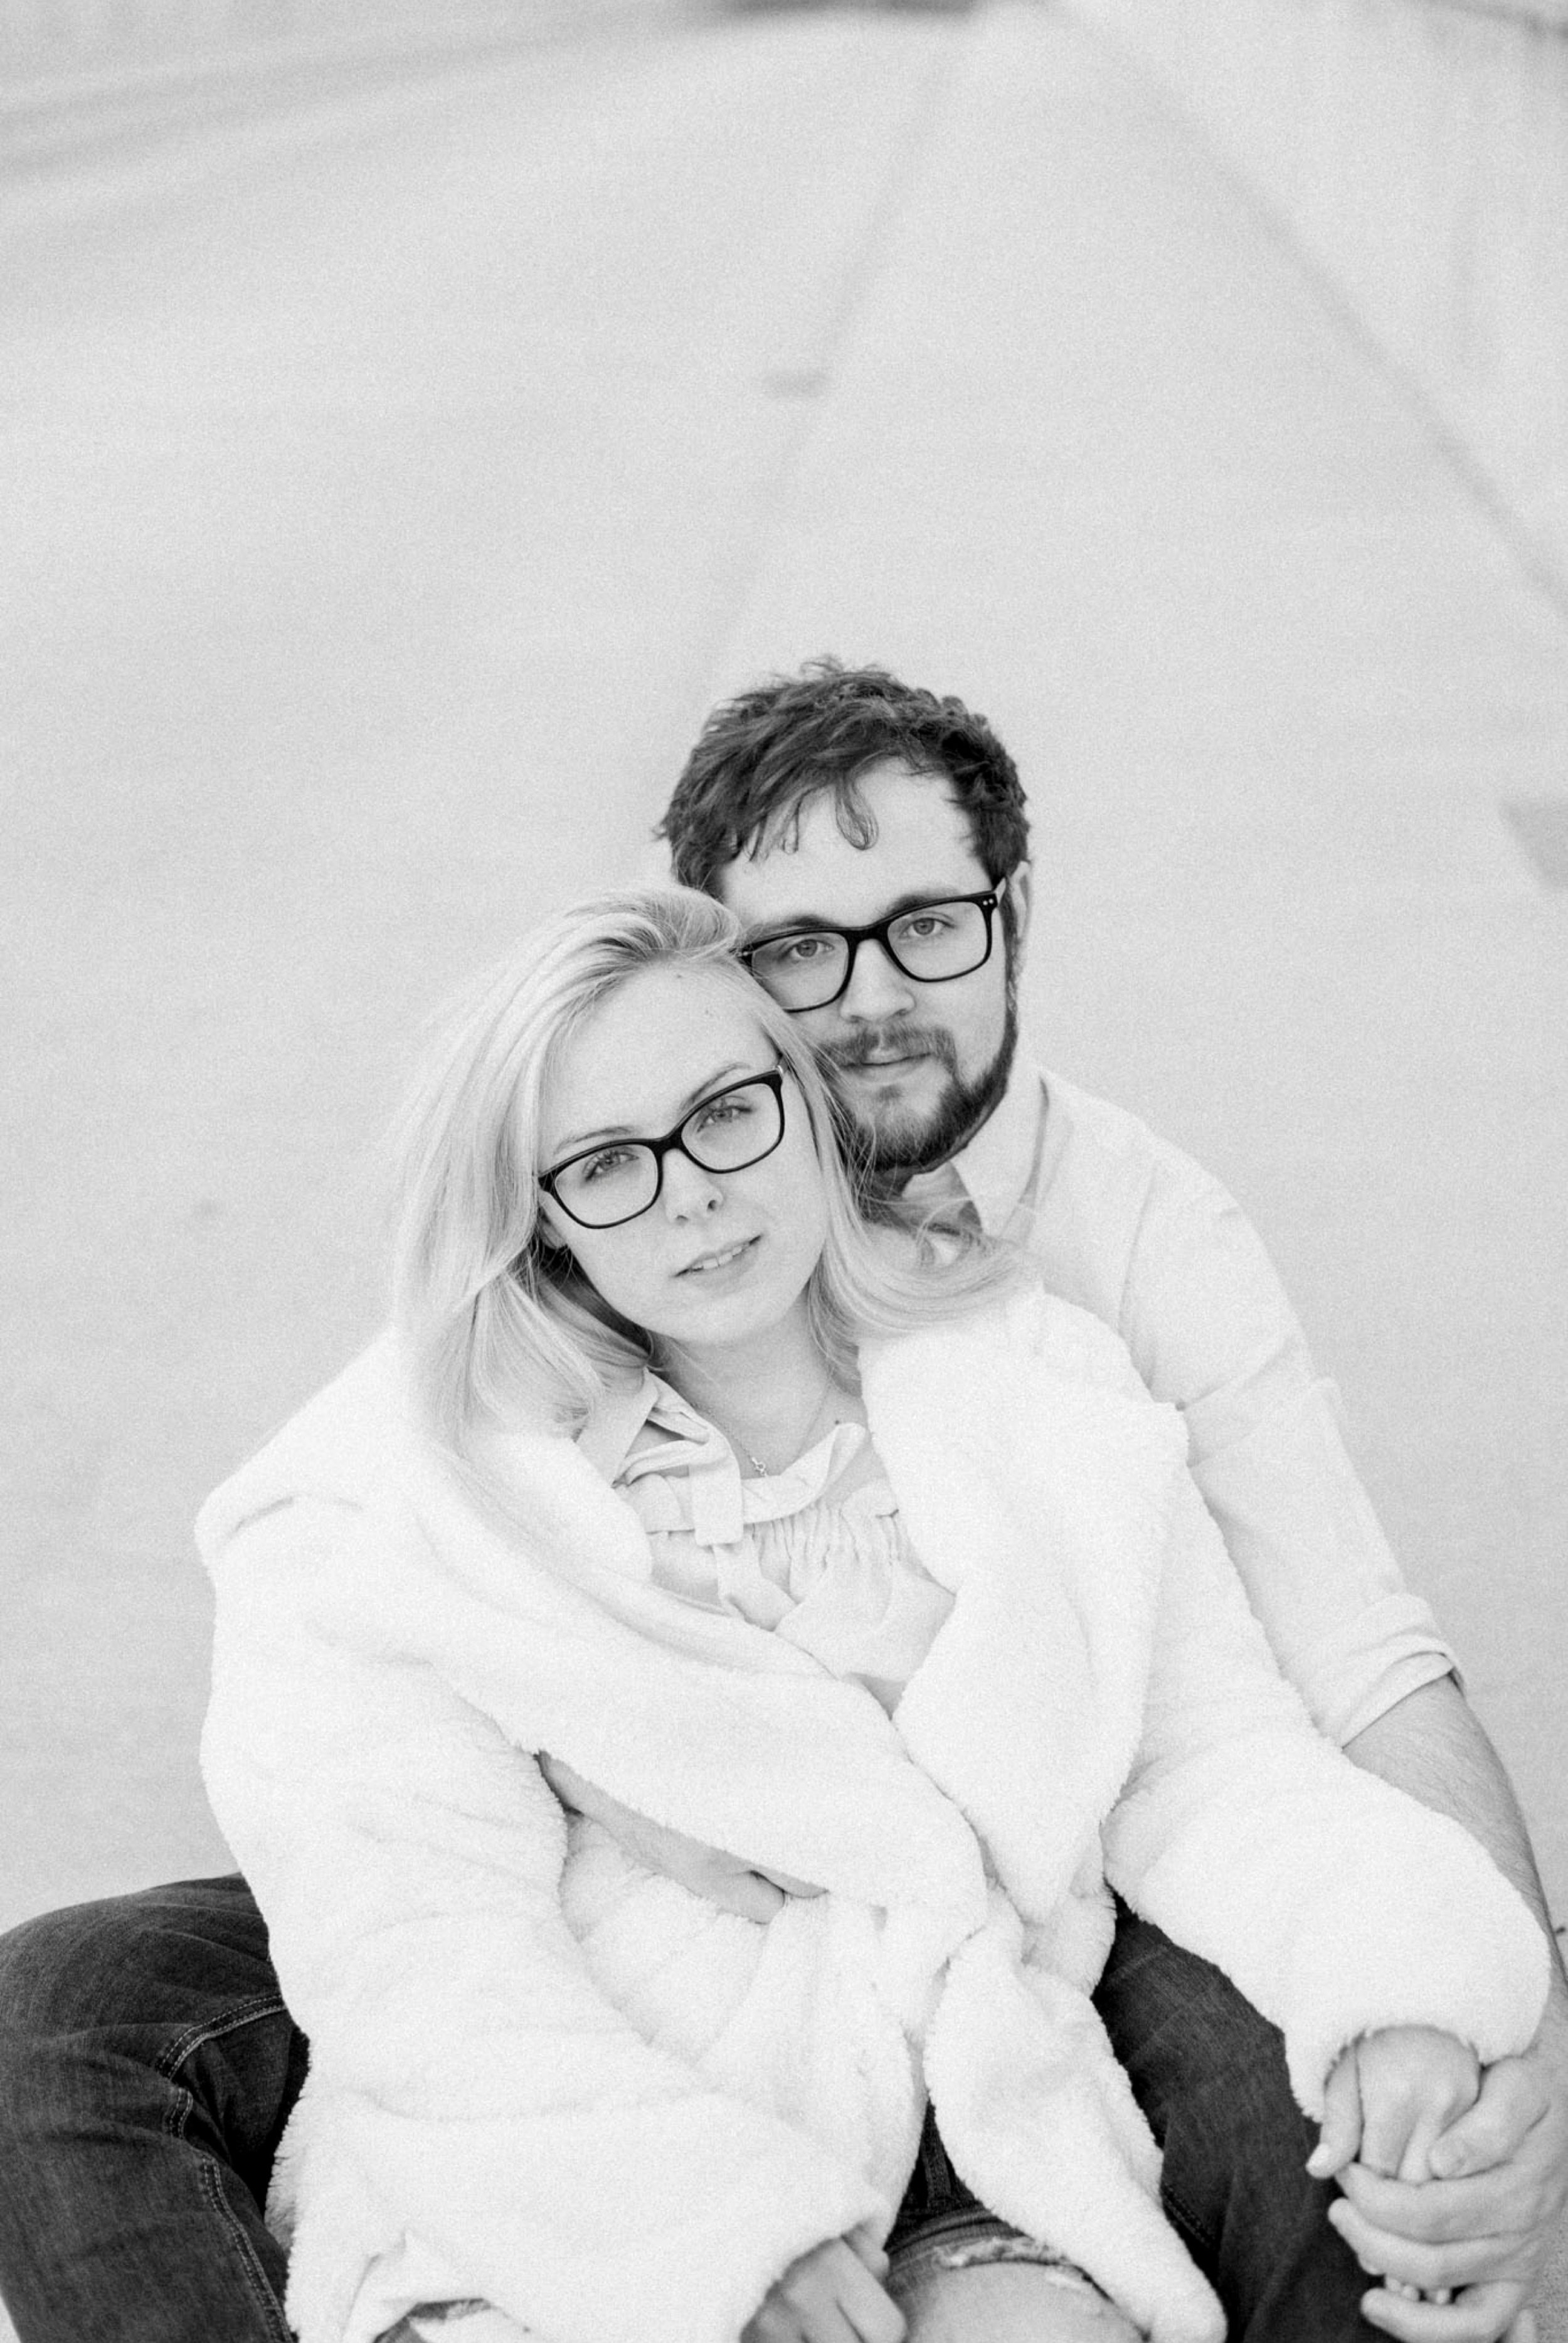 LaunceTarah_VirginiaWeddingPhotographer_EngagementSession_LynchburgVA_DowntownLynchburg_SpringEngagement 30.jpg